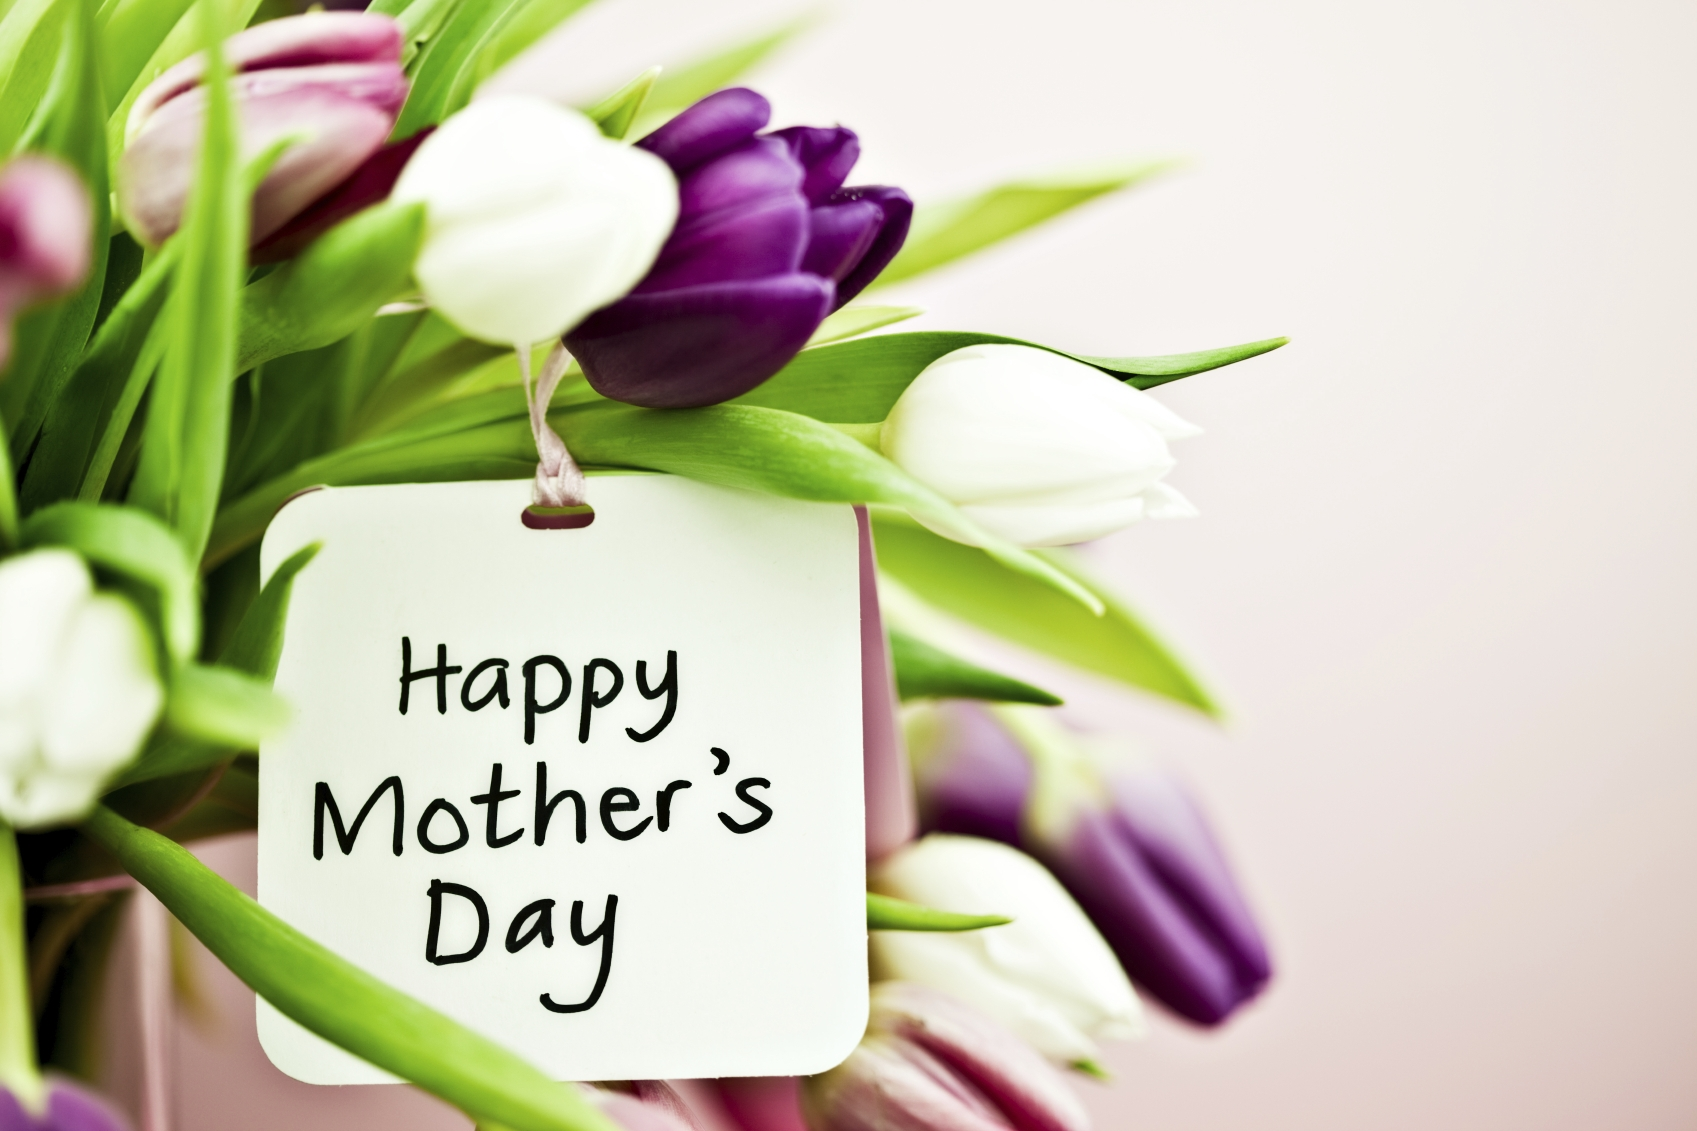 HQ Mother's Day Wallpapers | File 814.91Kb